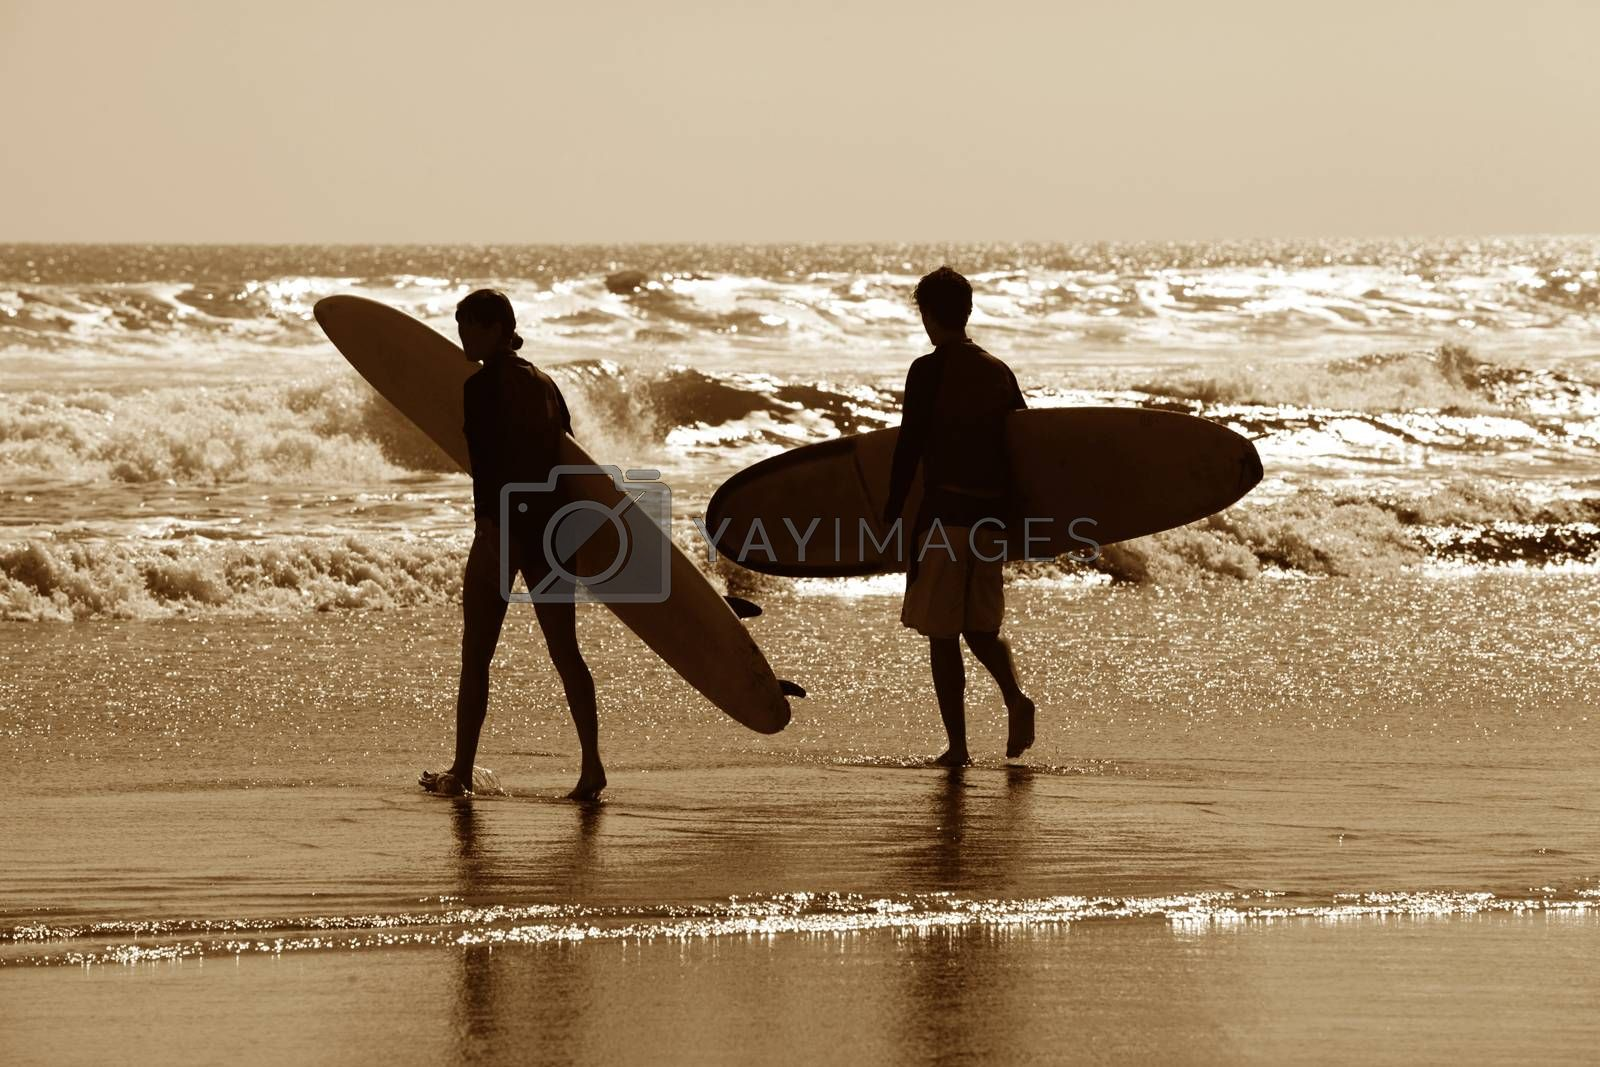 Silhouette of surfers in golden sunset light. Bali